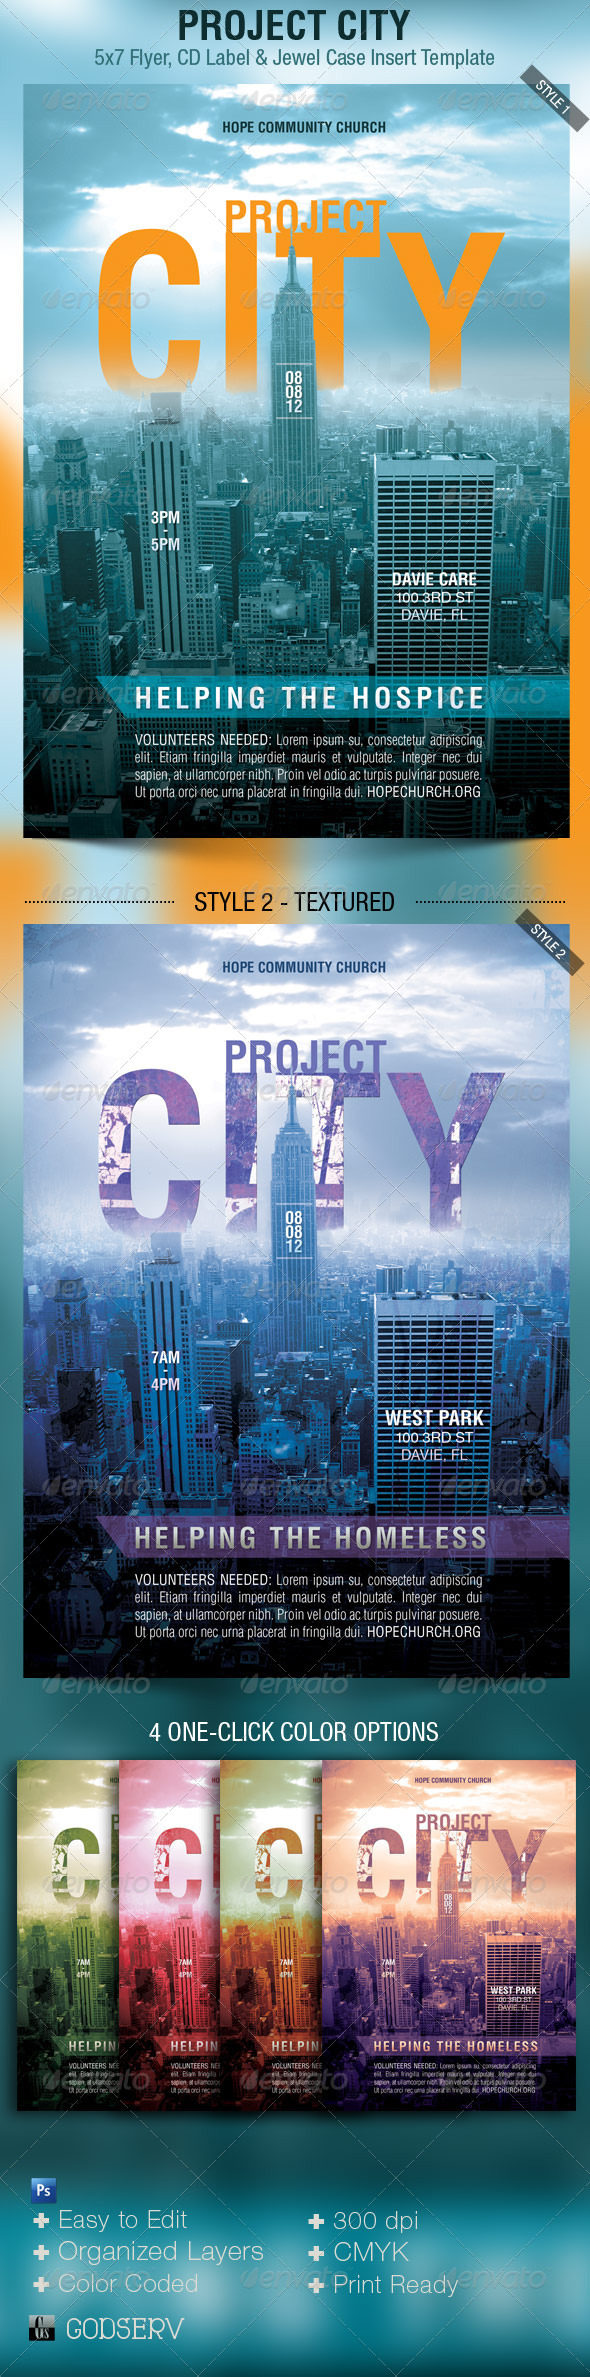 Project City Church Charity Flyer Template - Church Flyers